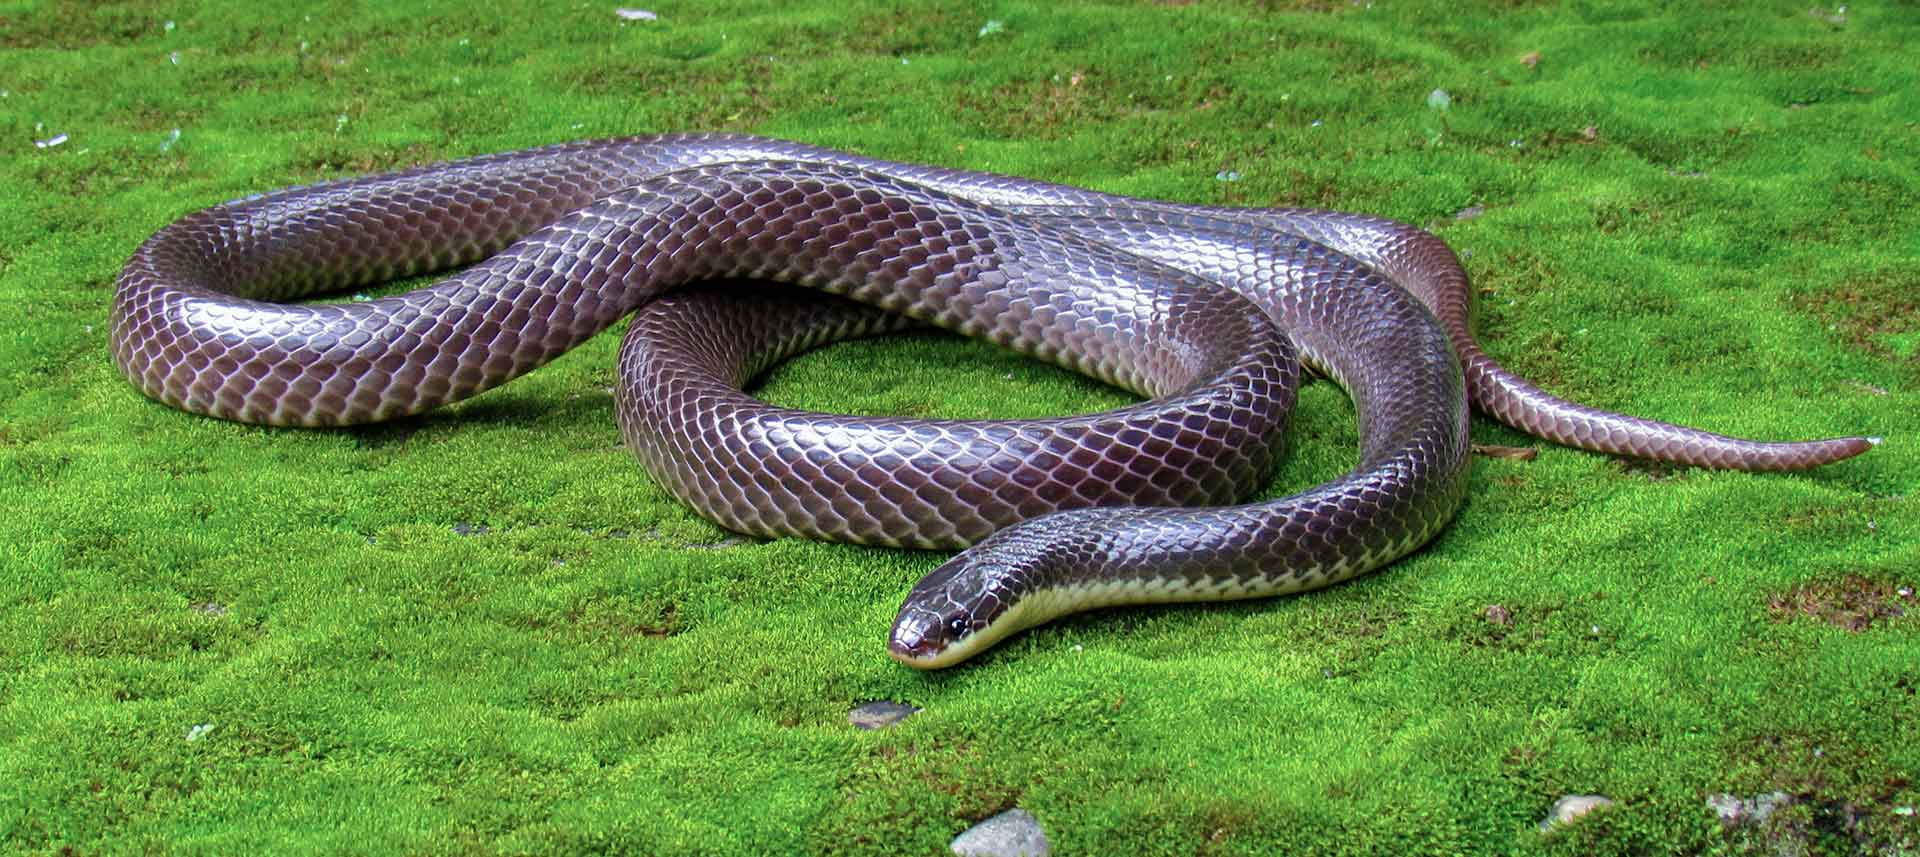 Lesser black krait (Bungarus lividus) was first described by Theodore Cantor in 1839 with a specimen from Assam. The name lividus refers to the bluish lead metallic colour of the snake. Its bites are fatal. We know hardly anything else about this small, secretive snake. Photo: Avrajjal Ghosh